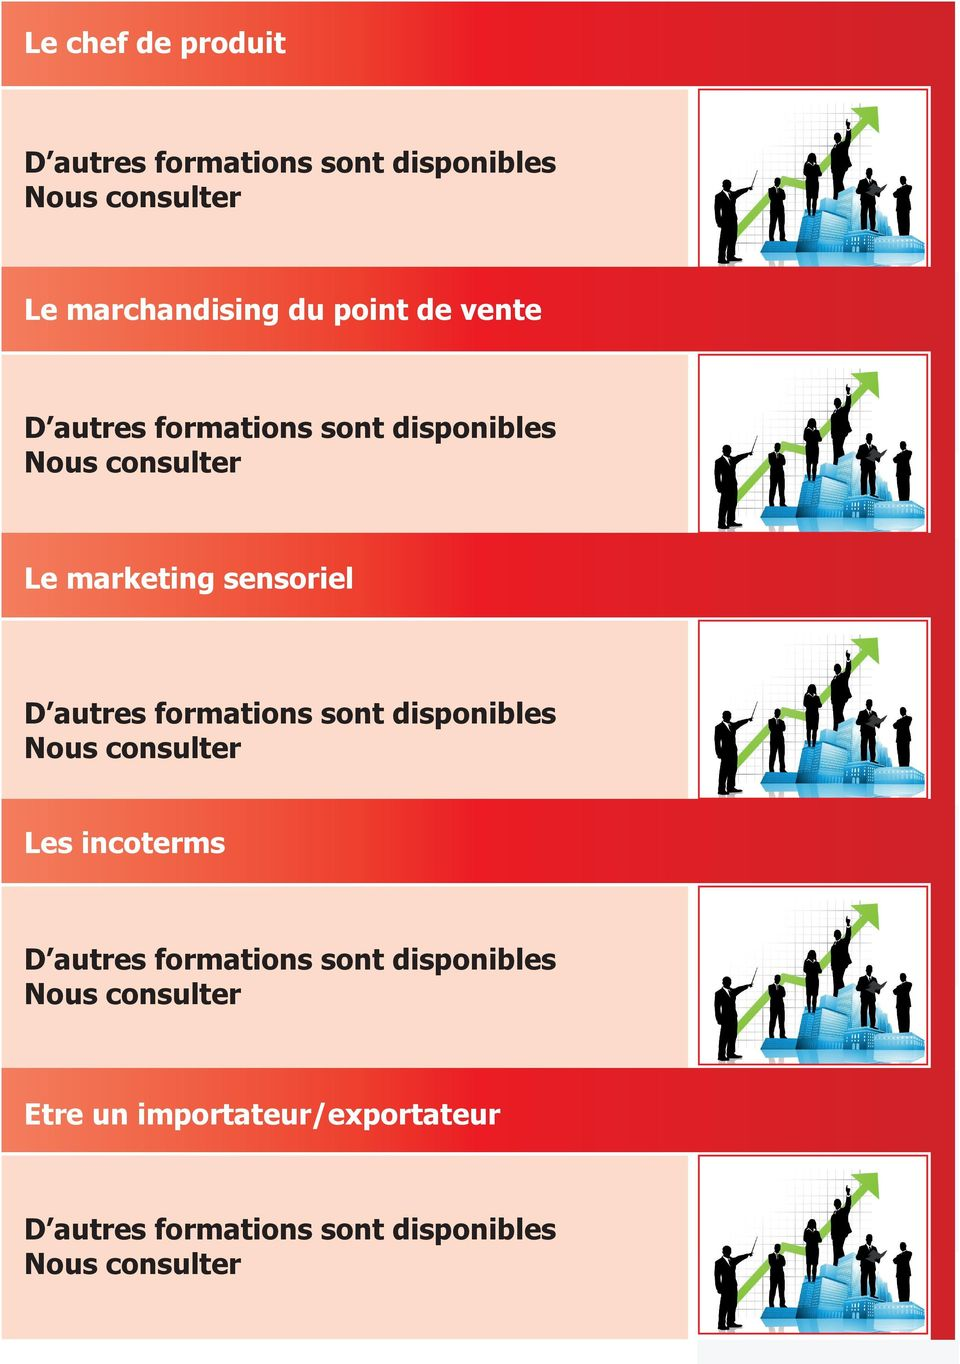 de vente Le marketing sensoriel